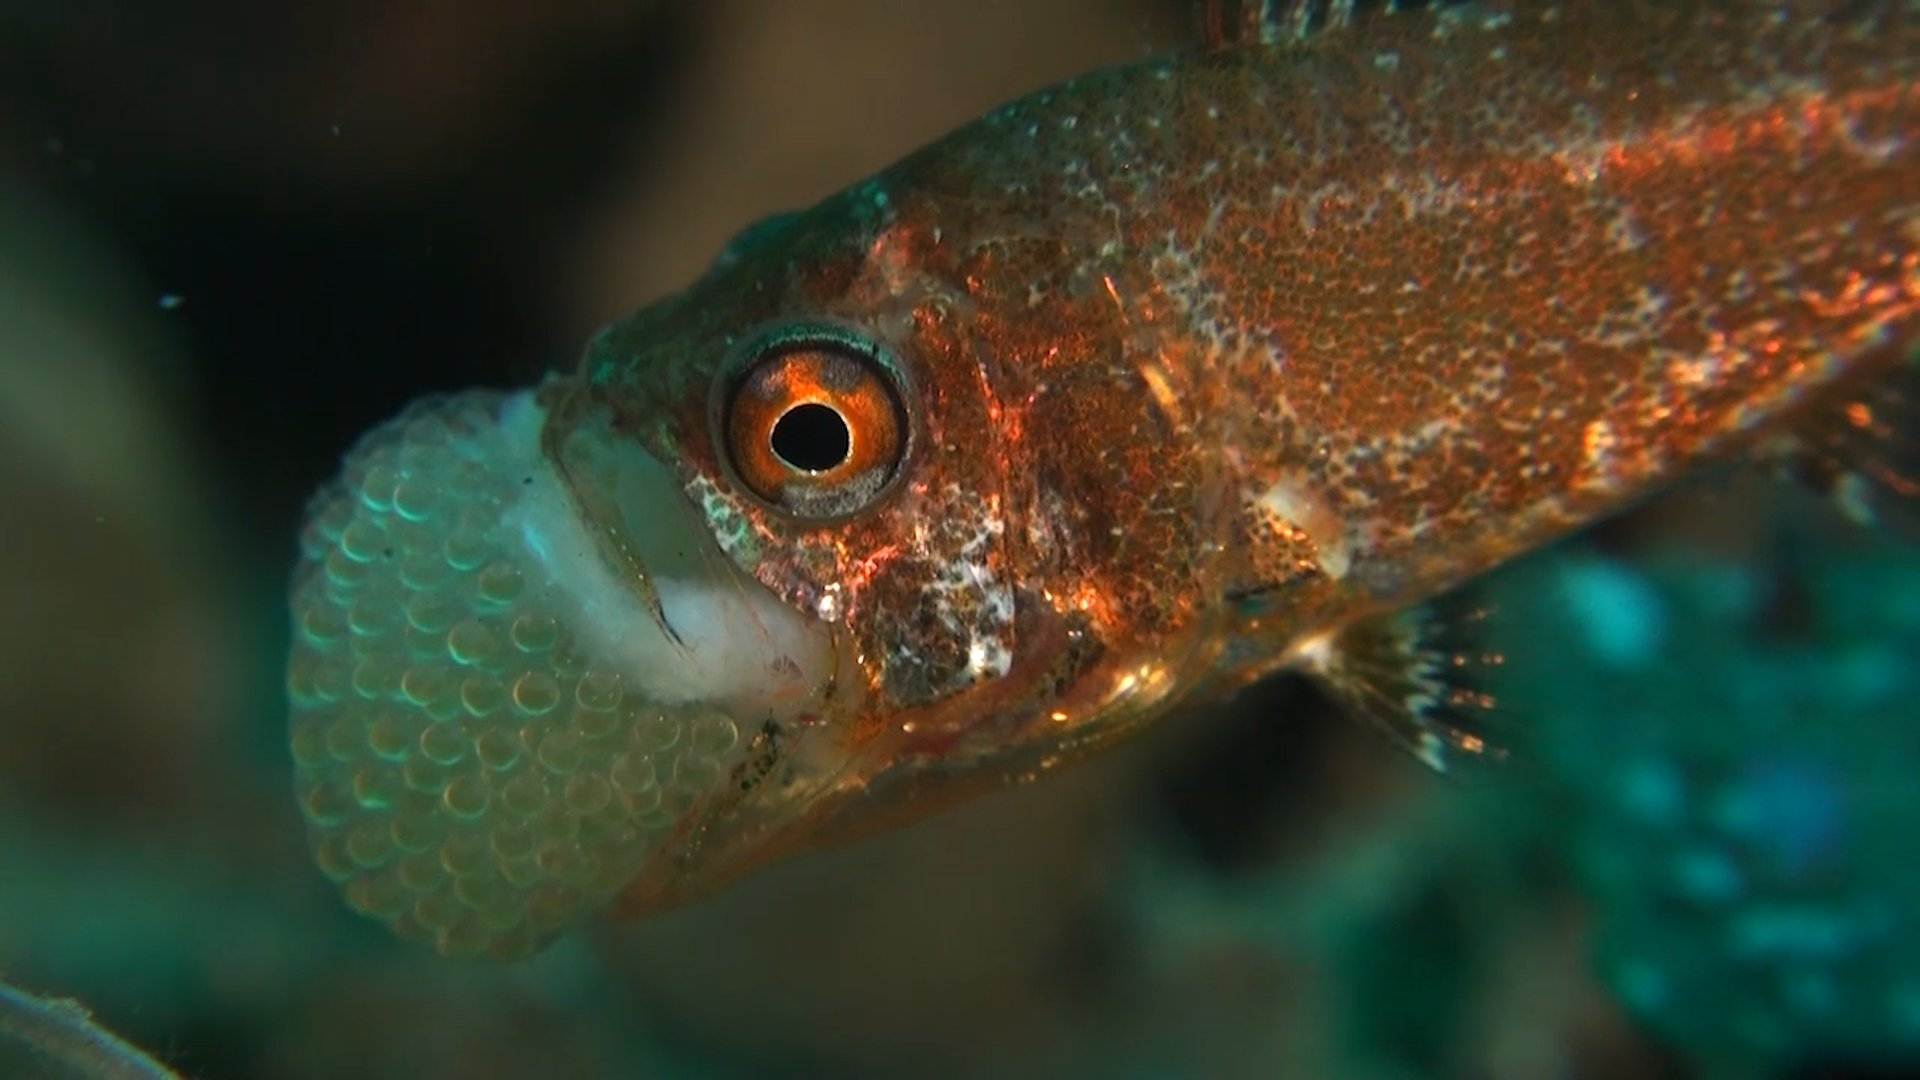 The ocean can be a scary place, so the cardinalfish nests its eggs in its mouth for safekeeping. https://t.co/cLkFeSTxue